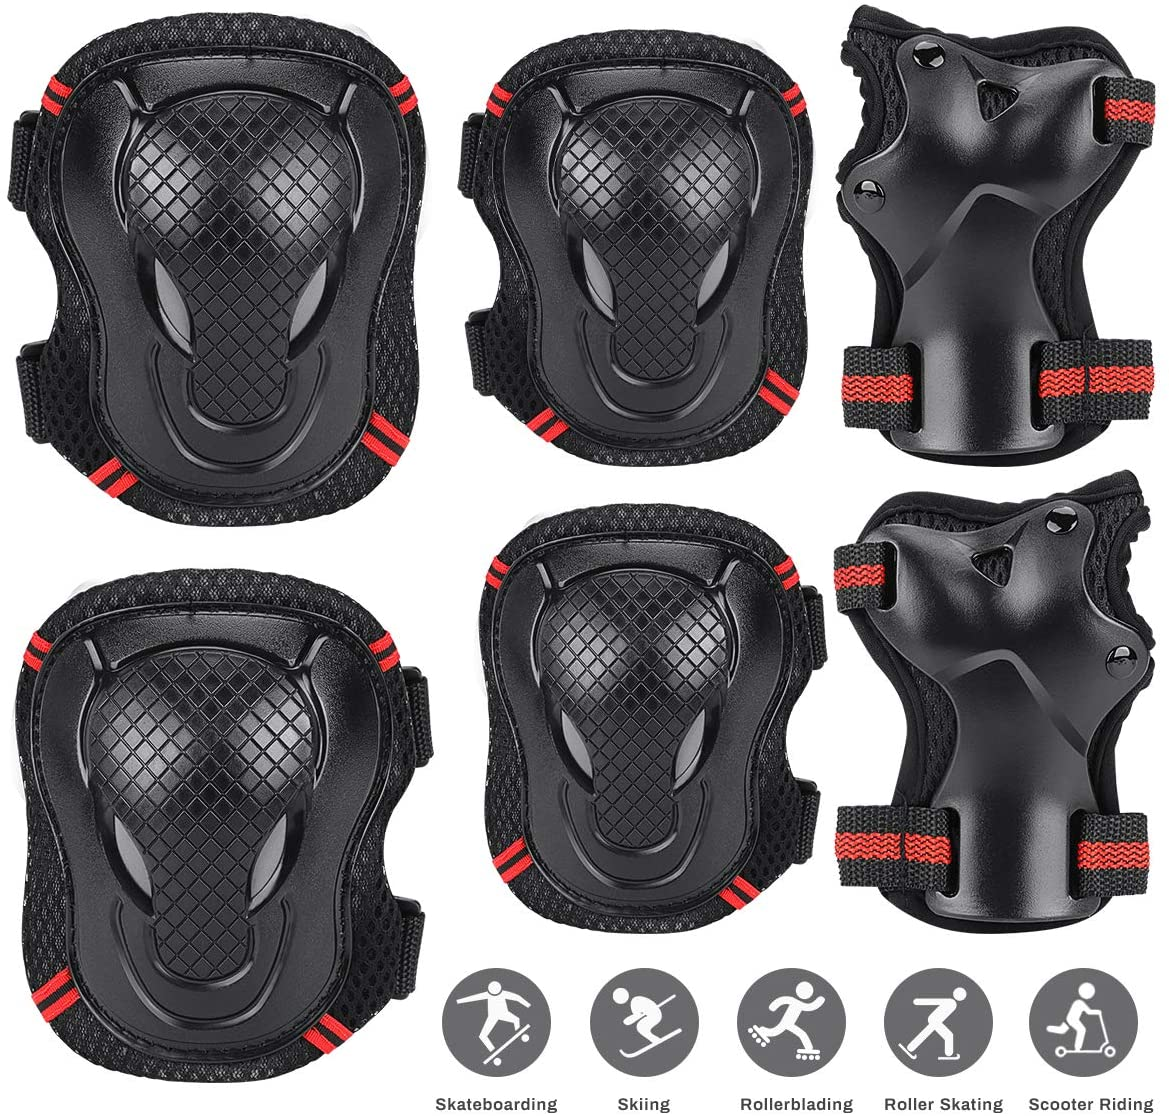 Jhua Kids Knee Pads Elbow Pads Wrist Guards for Kids Youths Toddlers Children, Adjustable Sports Protective Gear Set for 3-8 Years Old Cycling Skateboarding Skating and Kick Scooter - Black